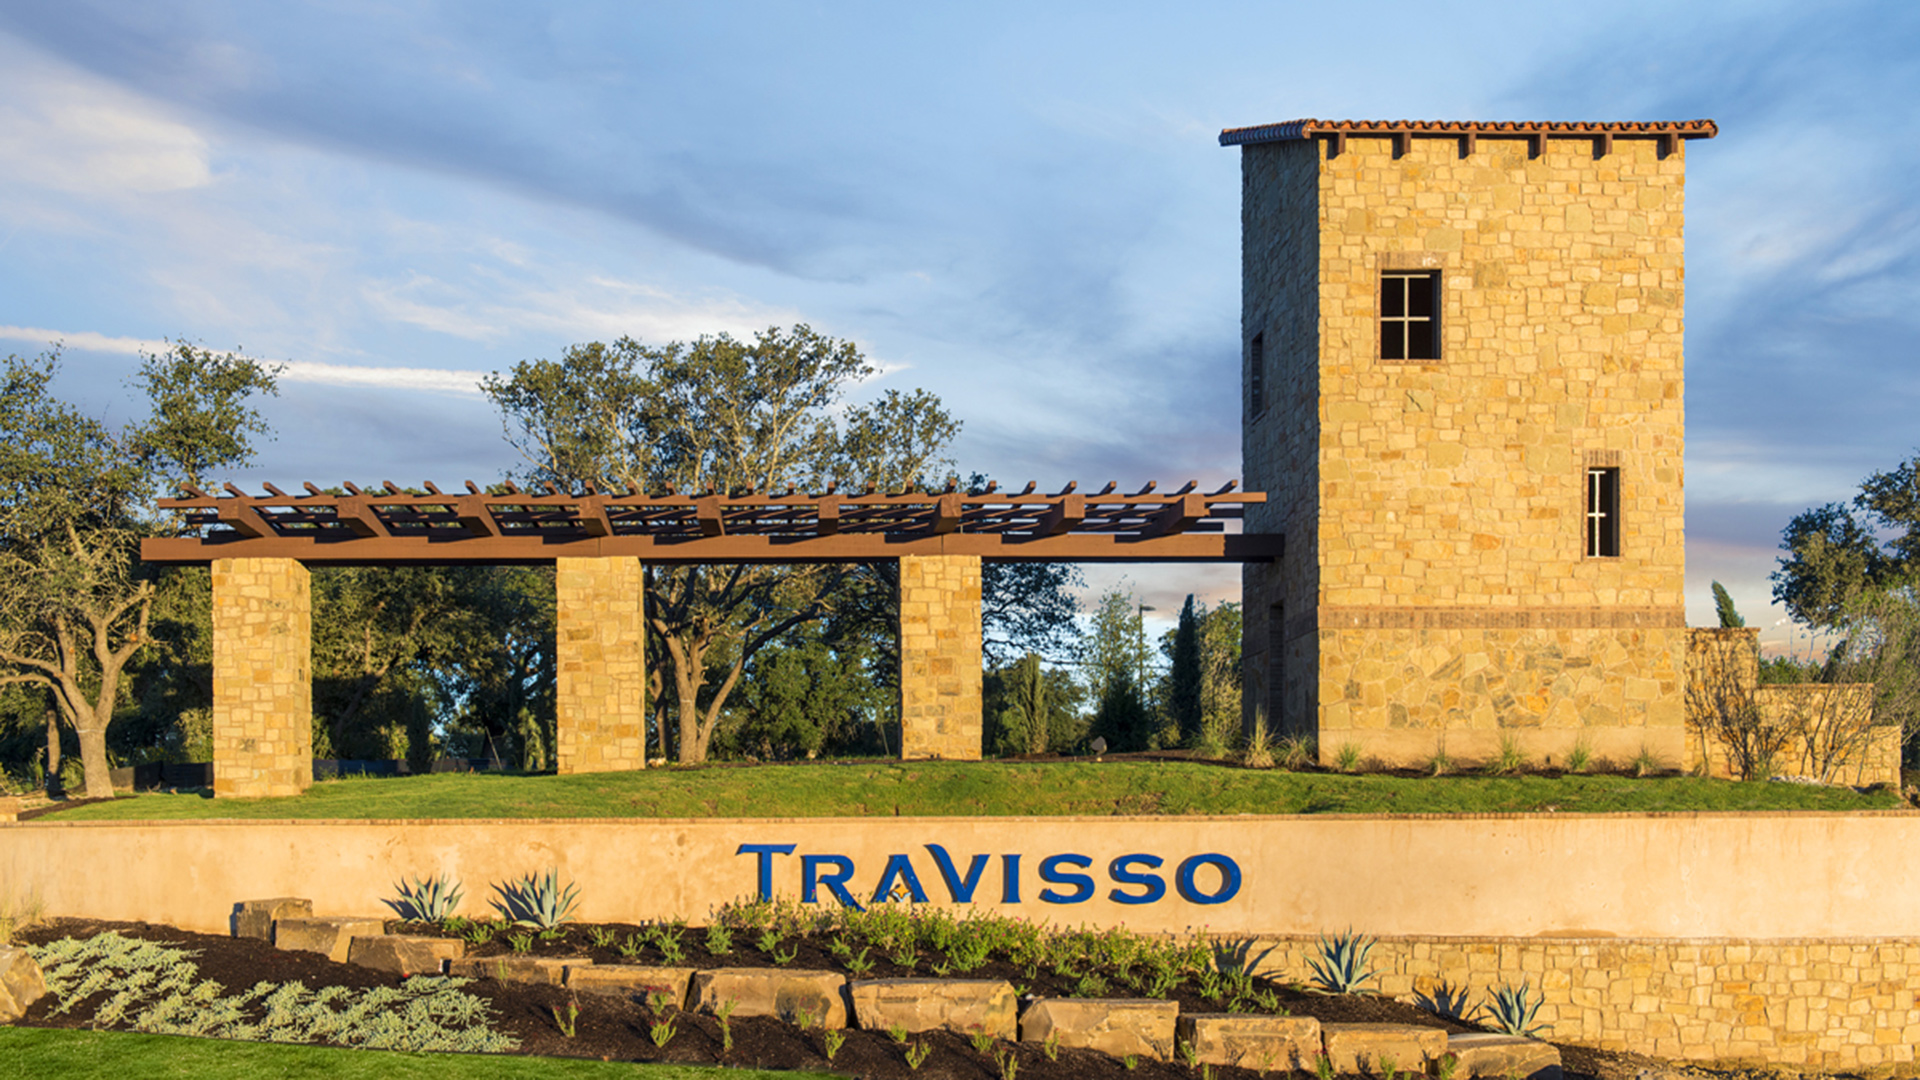 Travisso - Main Entrance